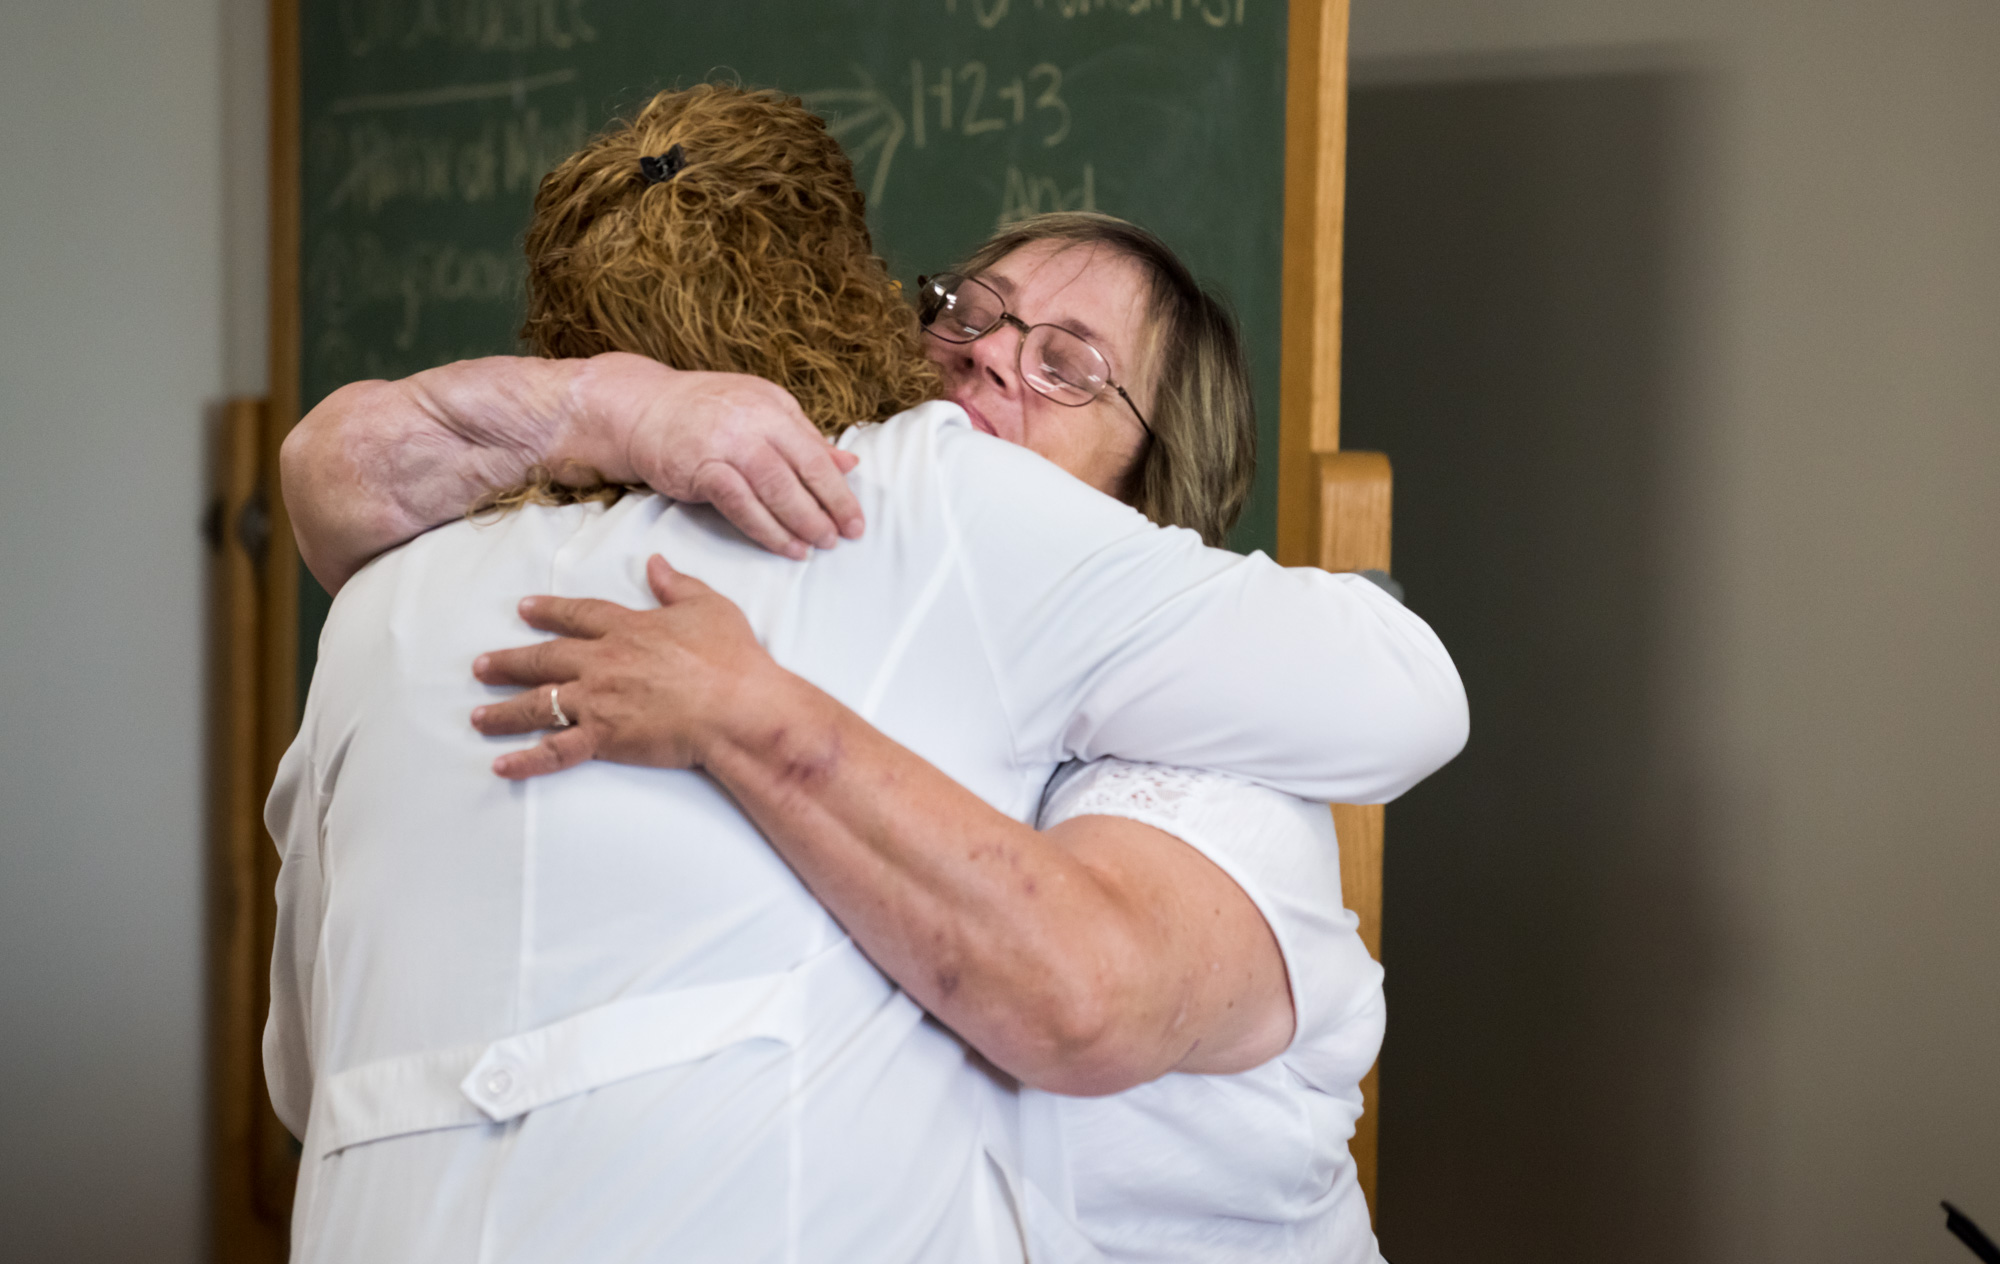 A female physician hugging a female patient at the trauma awareness luncheon